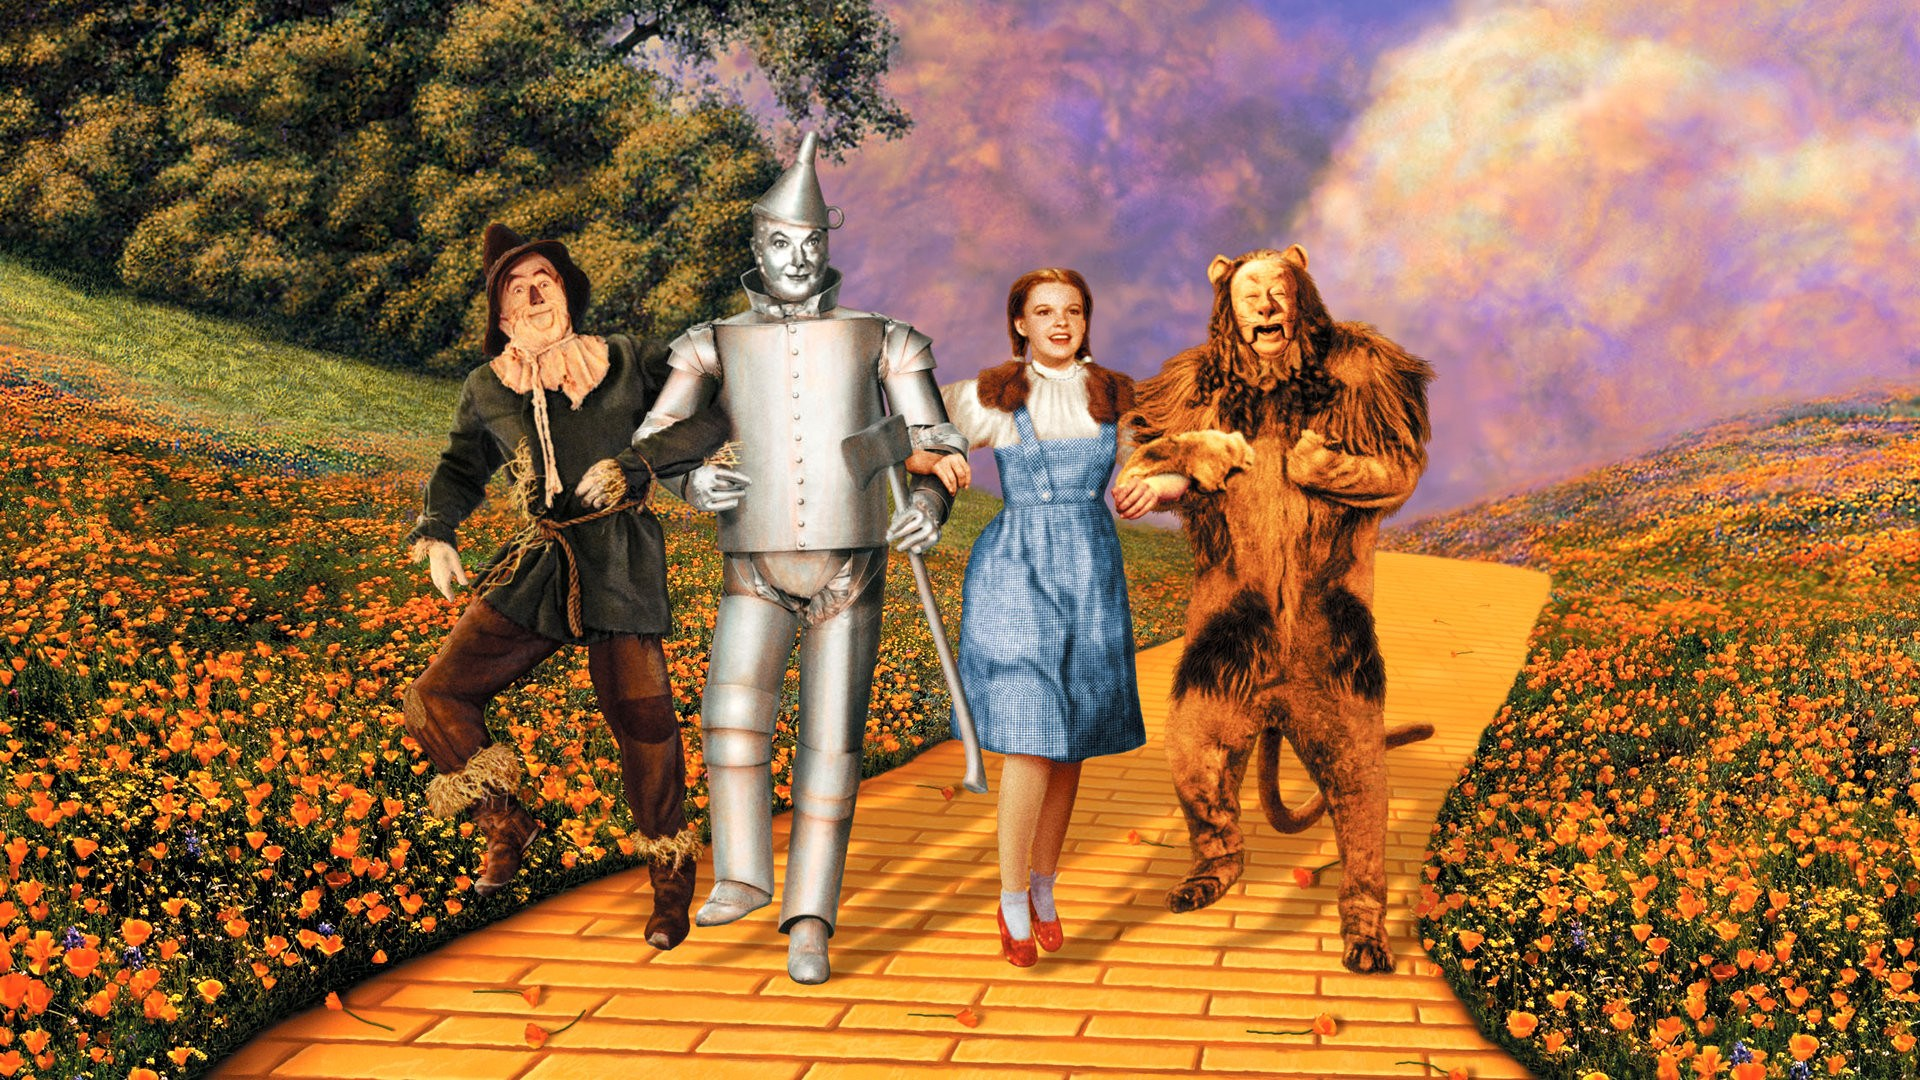 Wixard of Oz Drive in Movie Night in Cloverdale, Sonoma County, California